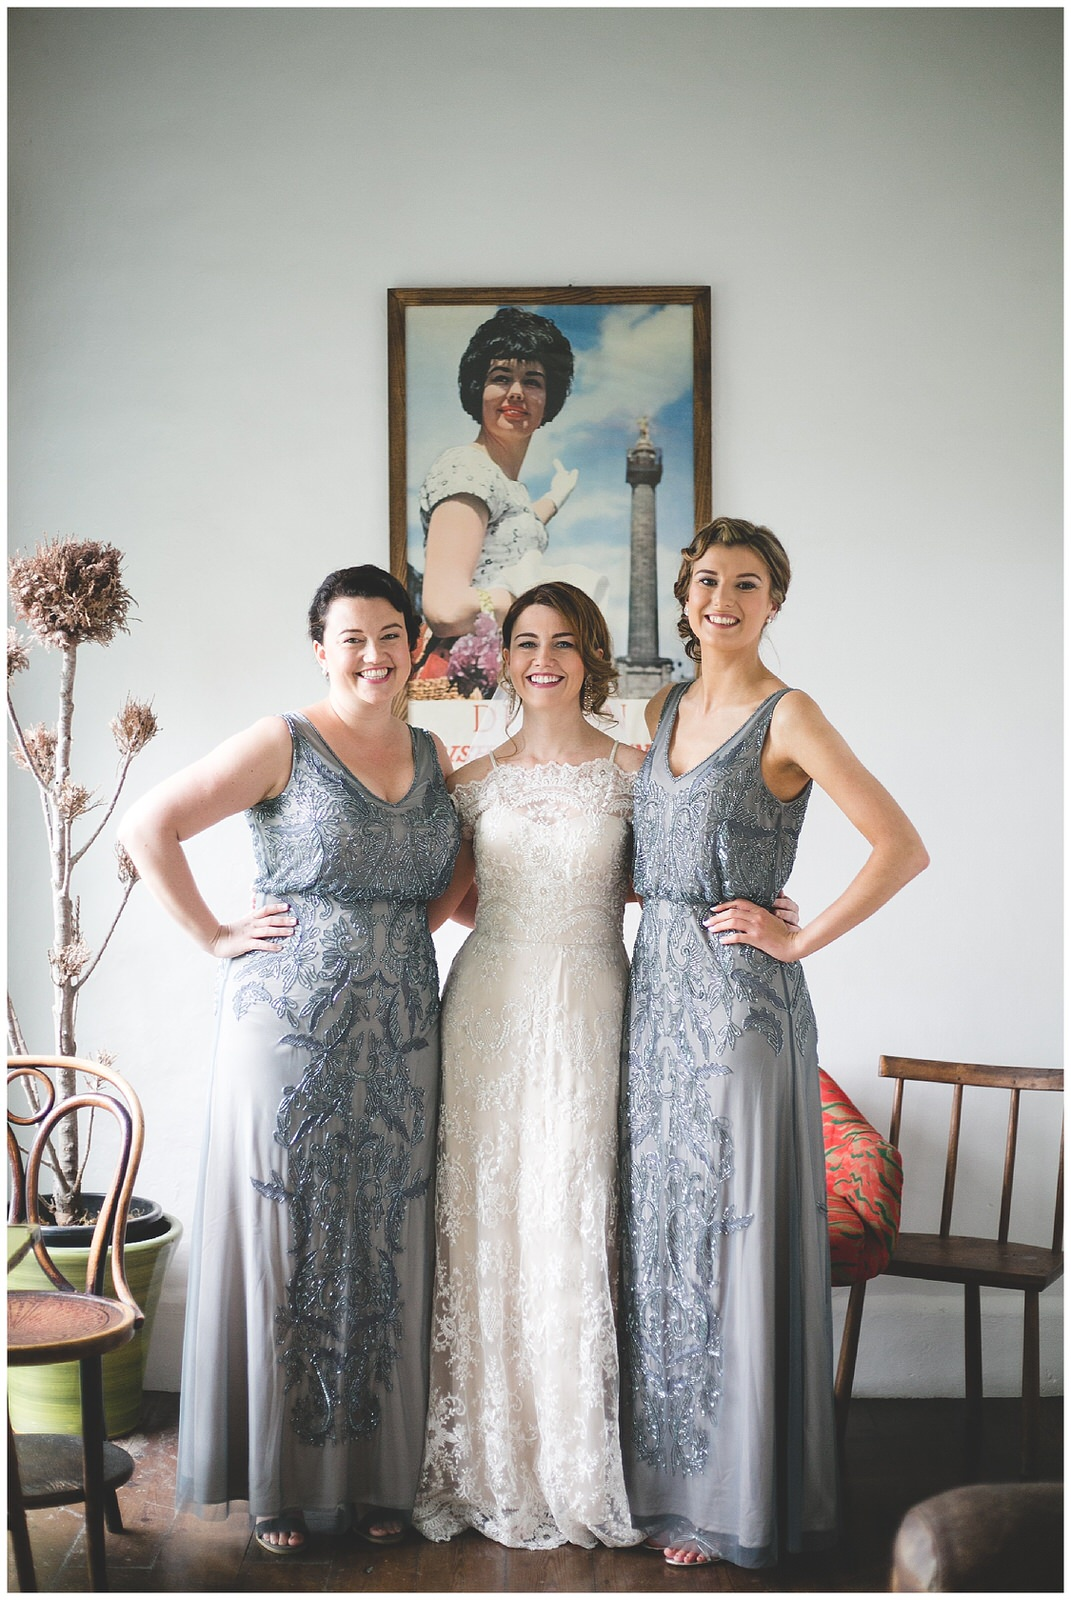 Birdesmaids in stunning blue grey sequins gowns - Captured by Wild Things Wed Photography